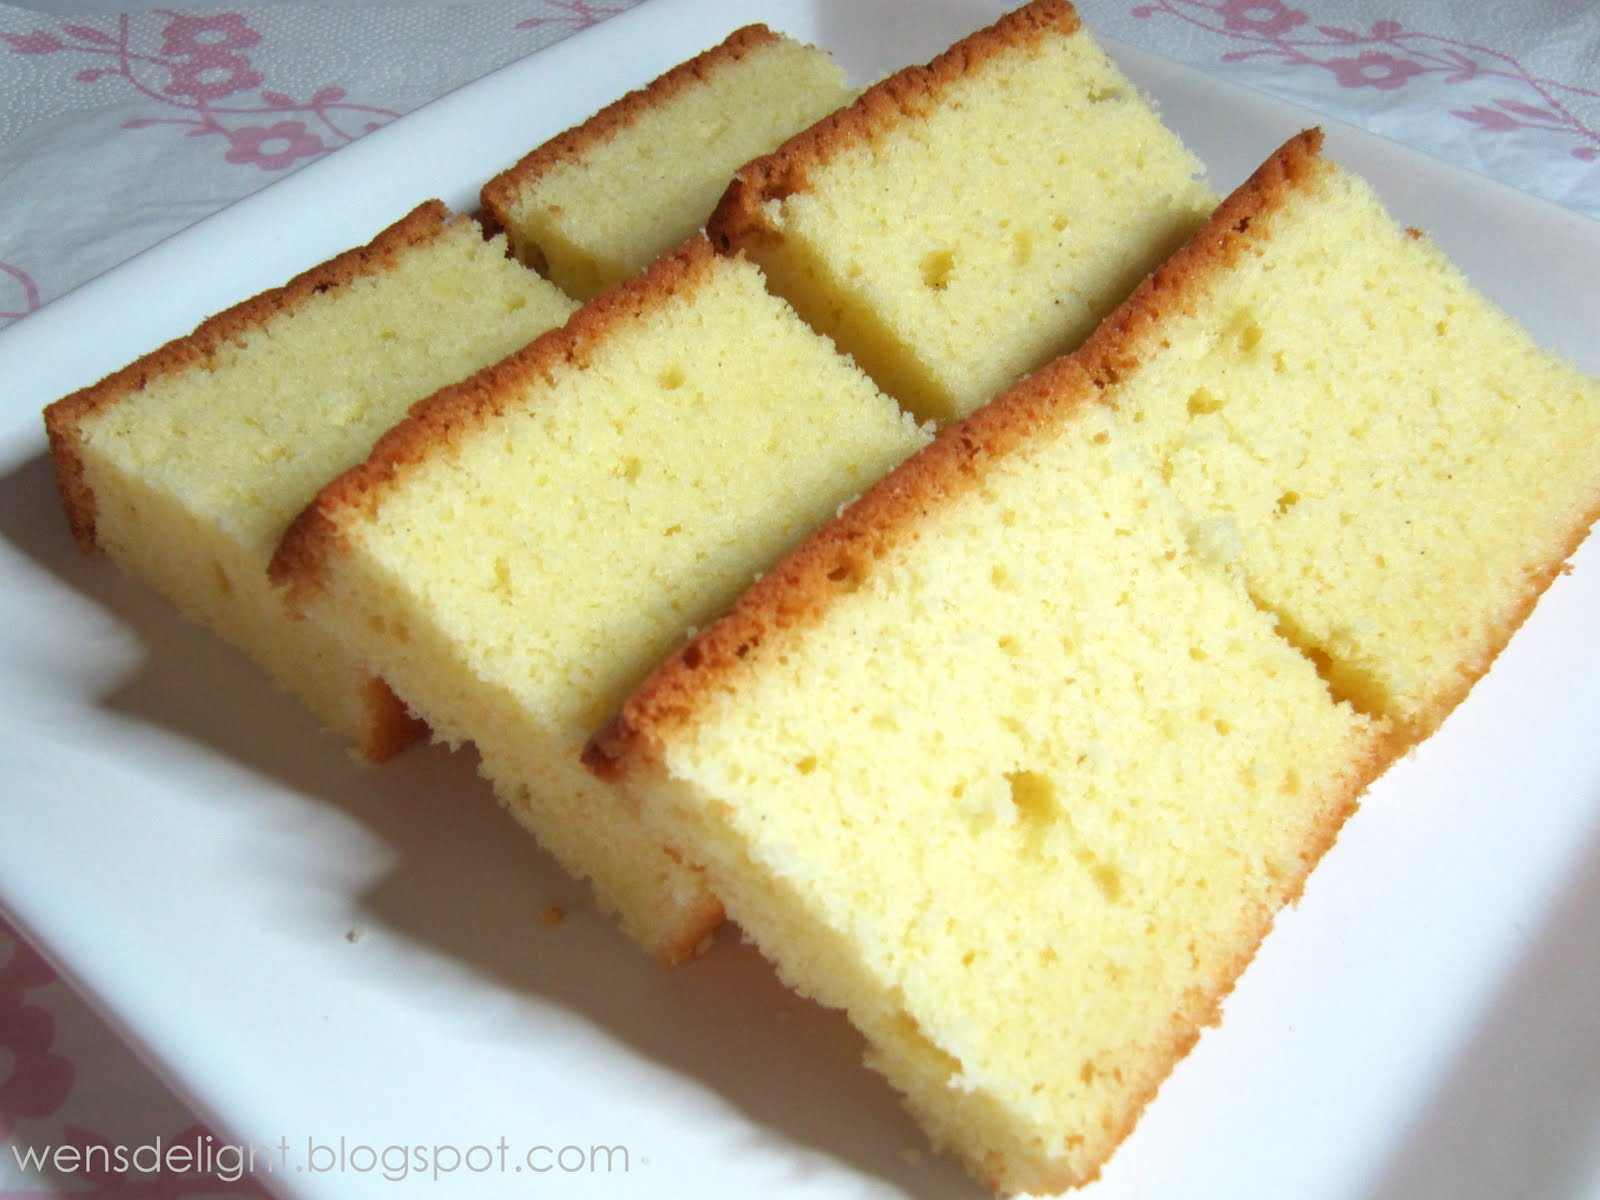 Wen s Delight: A Nice Butter Cake Recipe